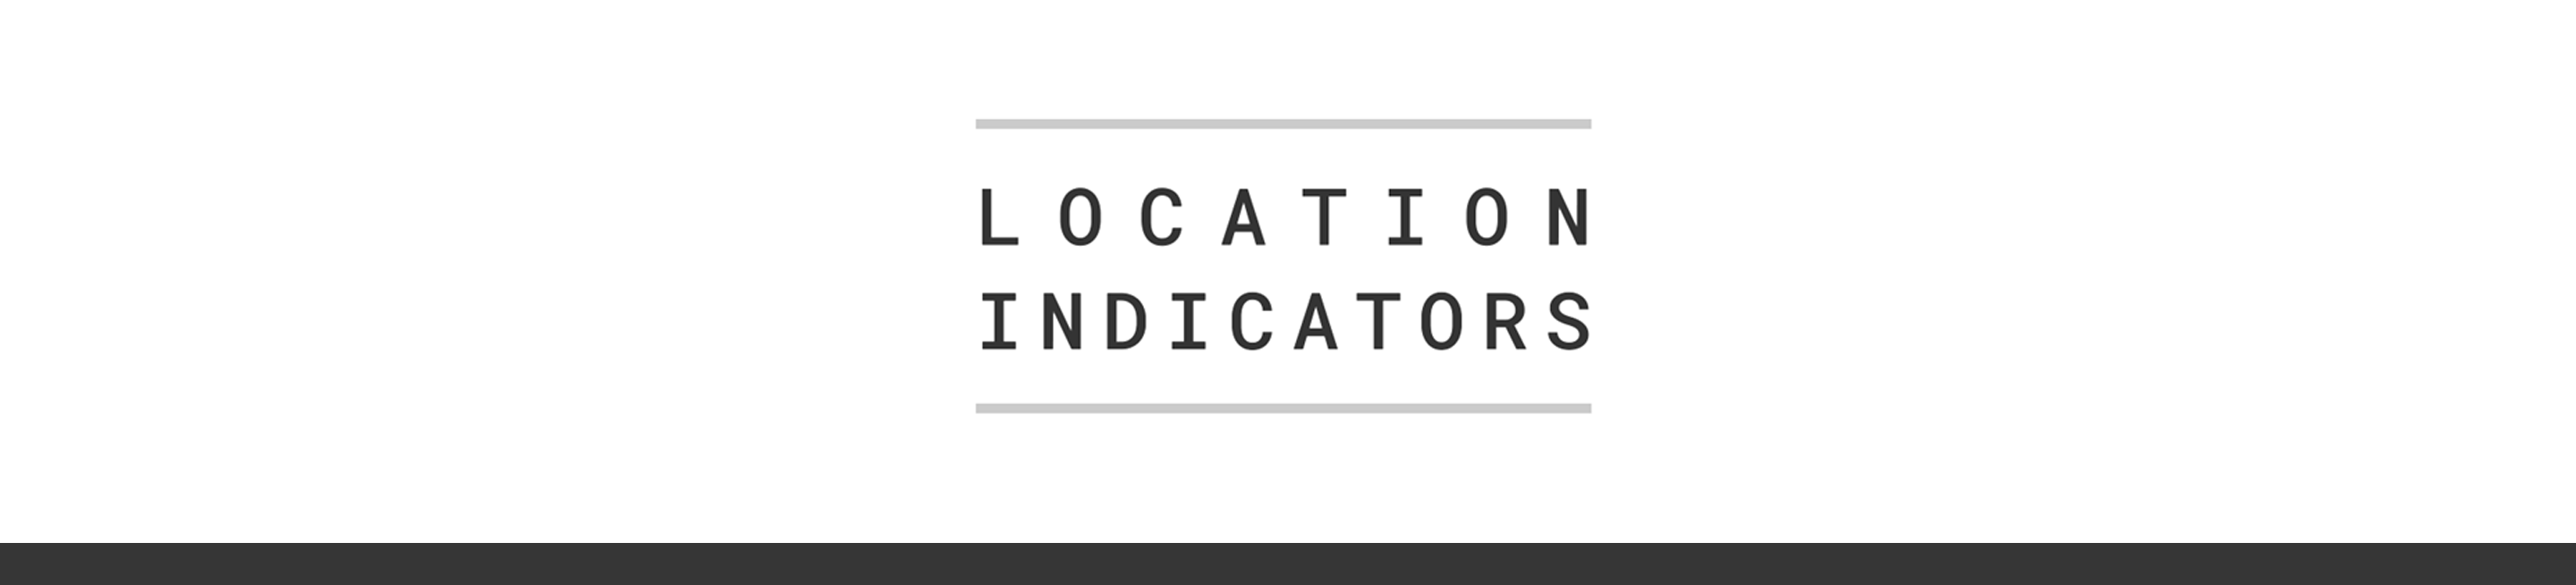 Location Indicators